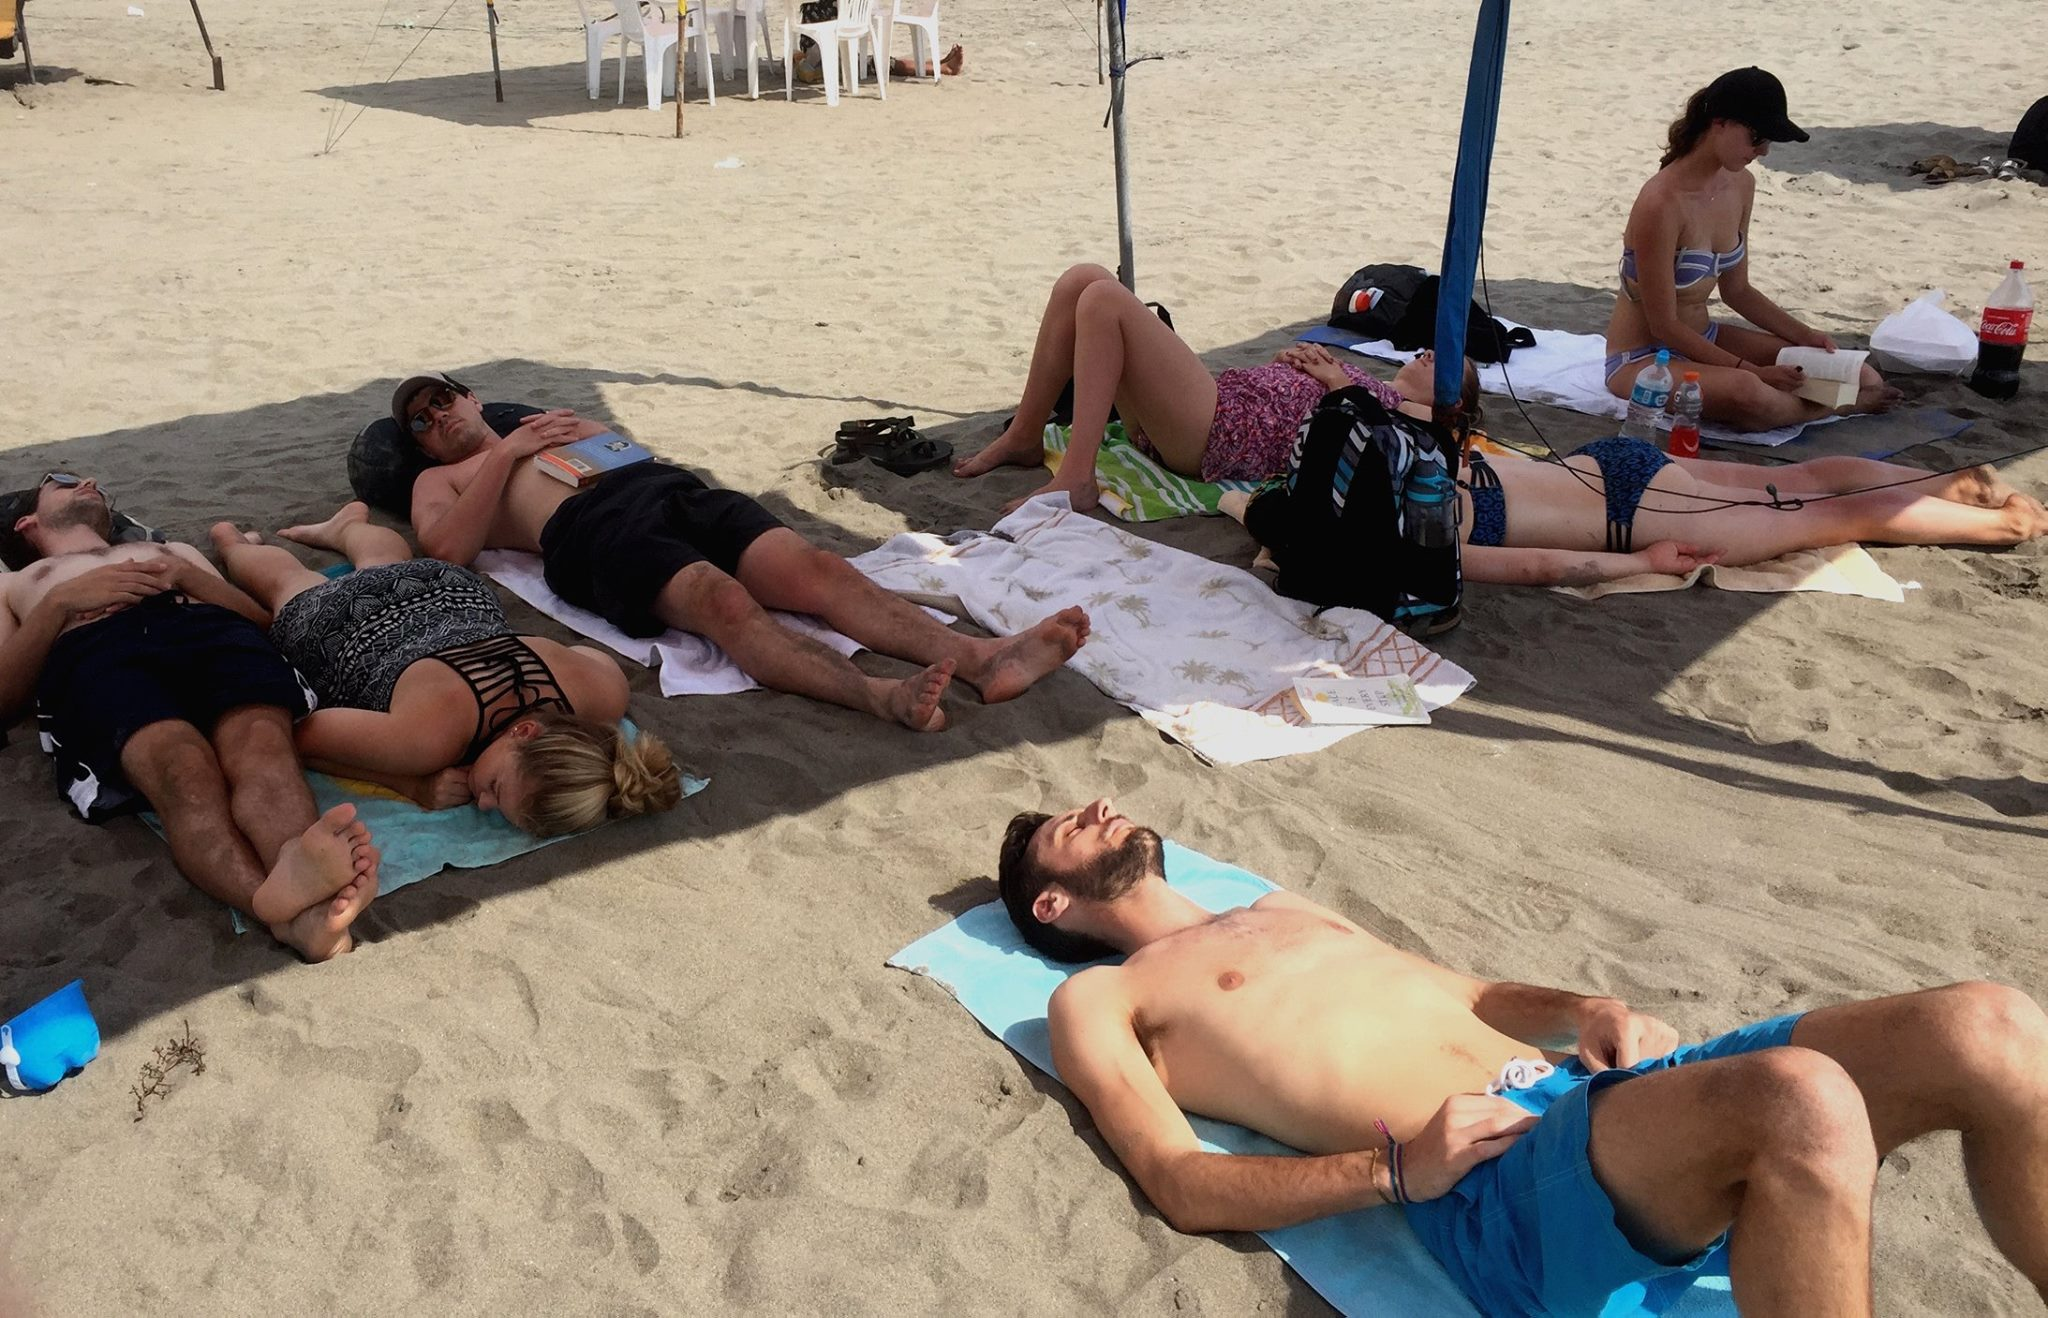 Relaxing on the beach in Peru